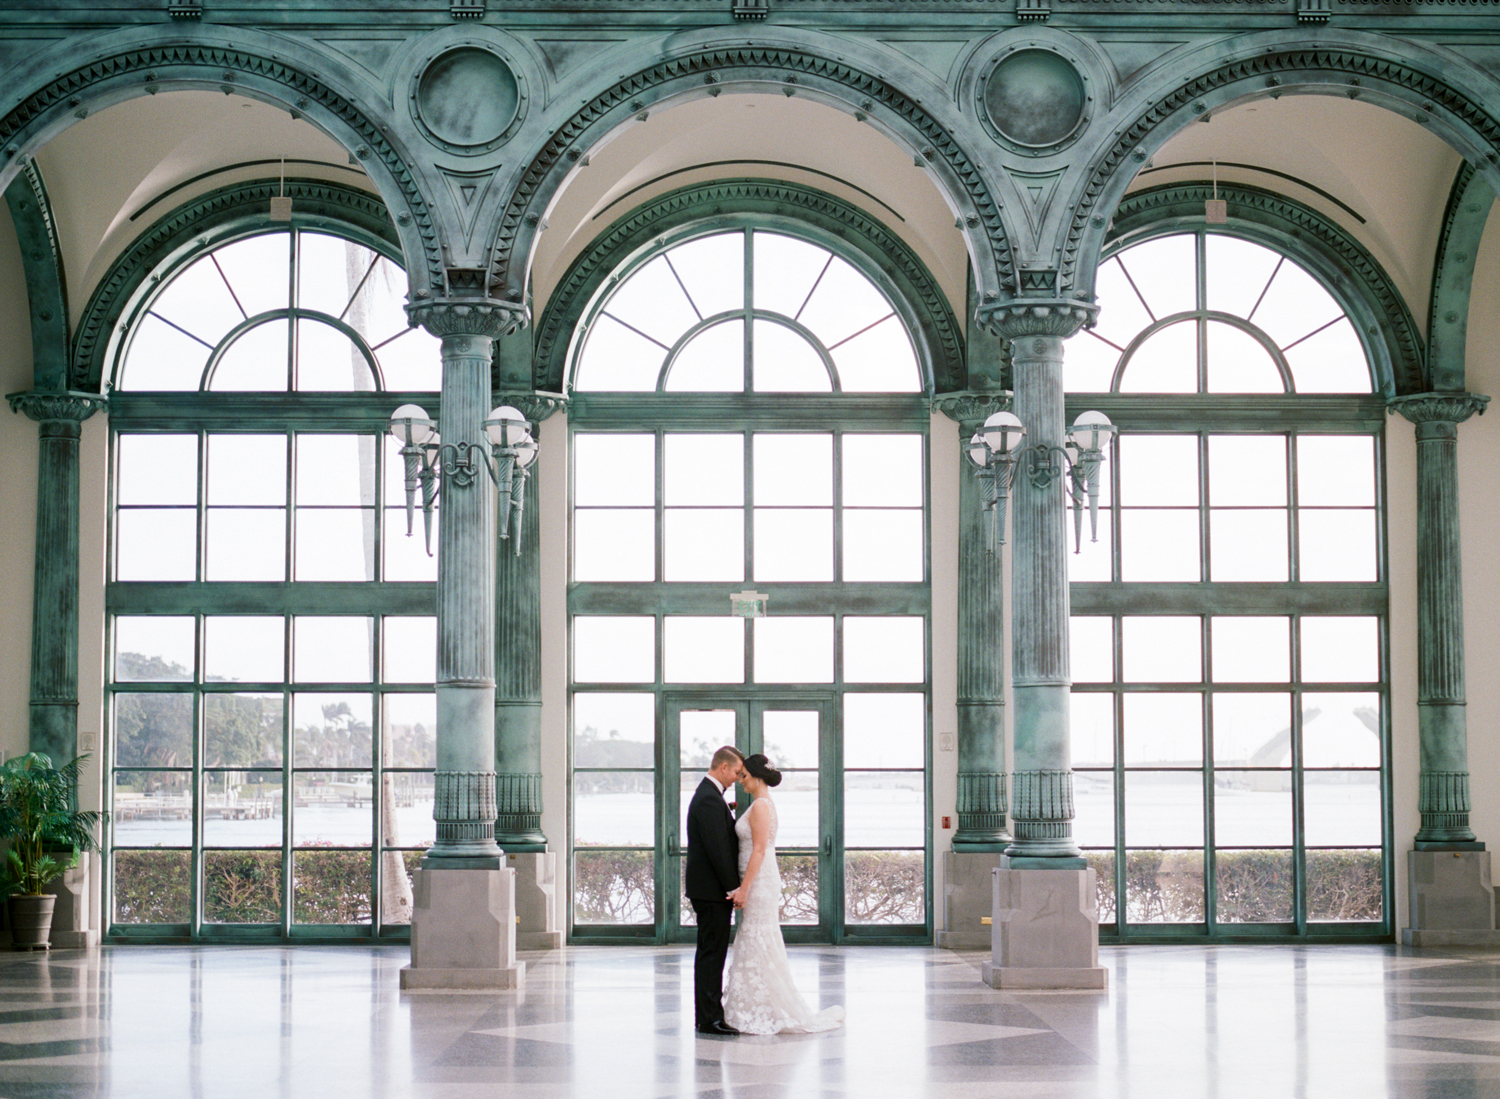 city hall wedding bride and groom in front of windows